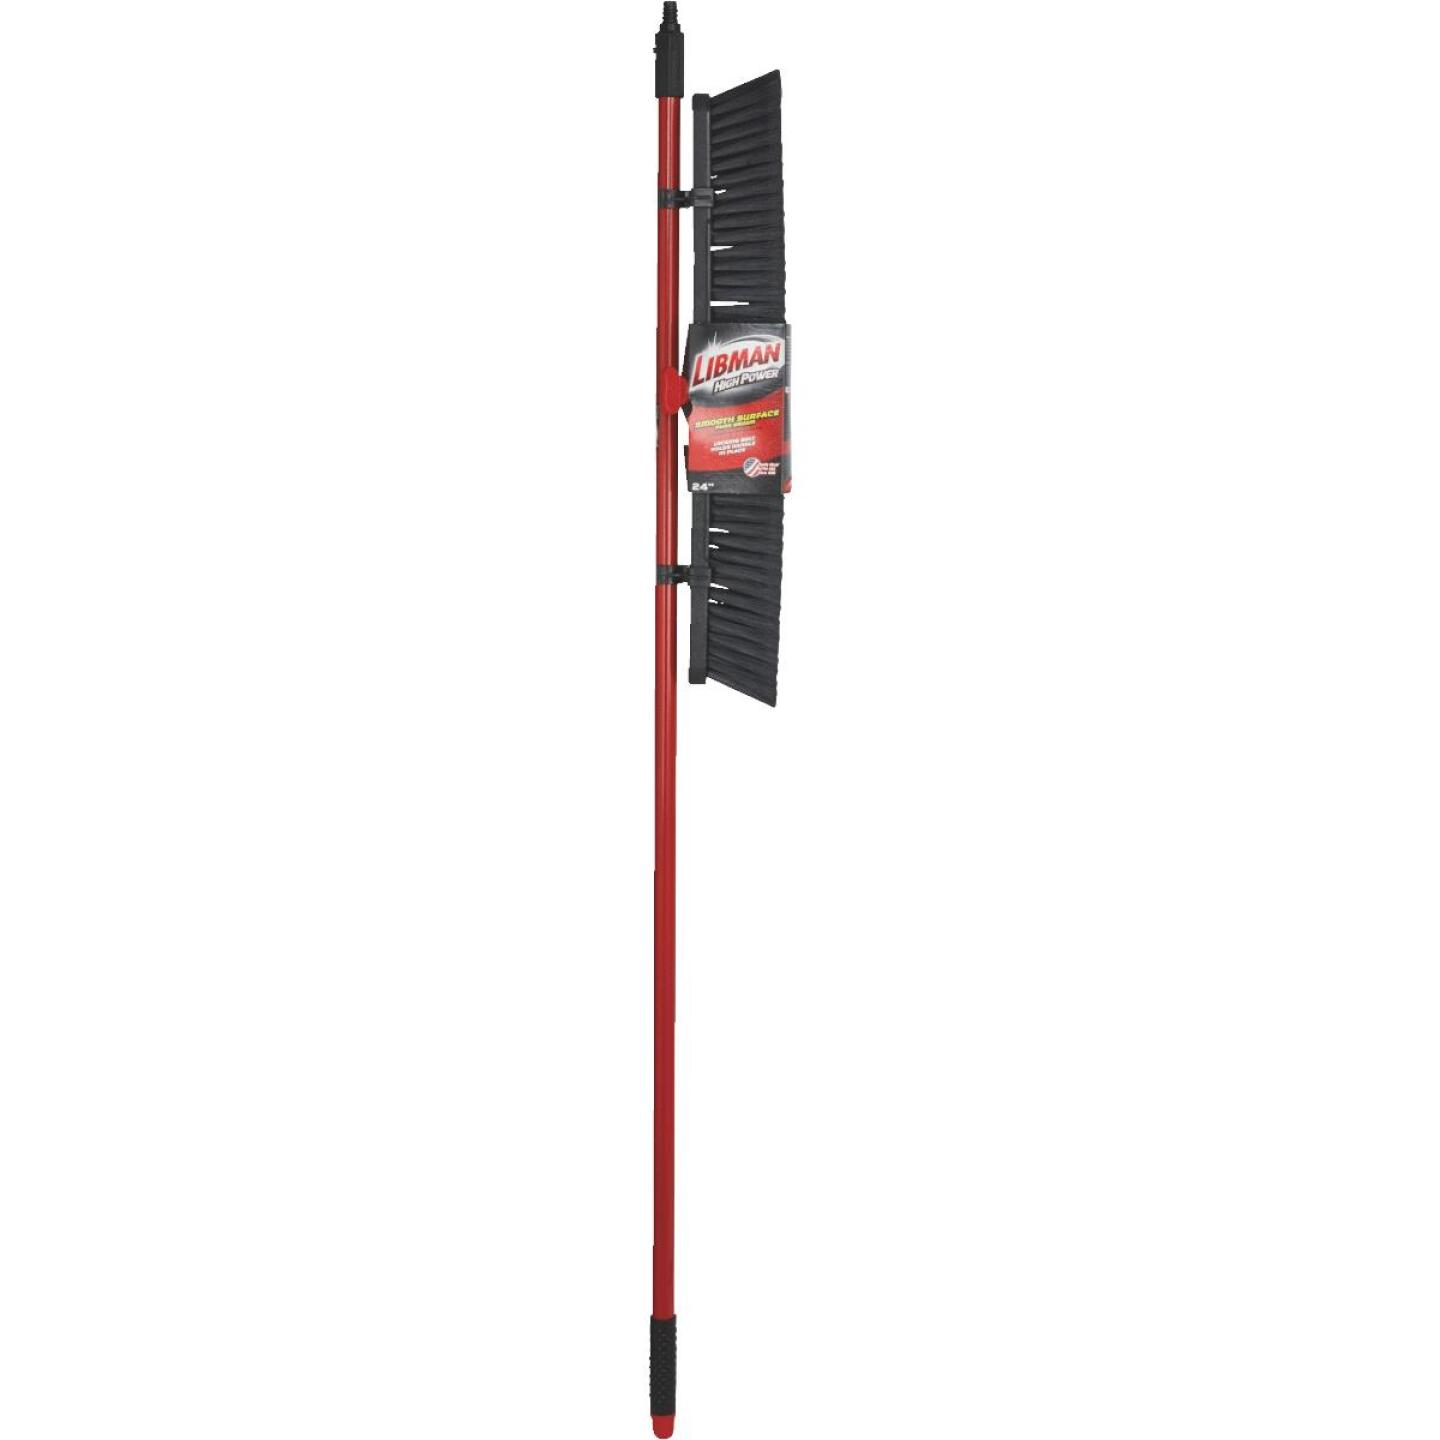 Libman 24 In. W. x 64 In. L. Steel Handle Smooth Surface Push Broom Image 2